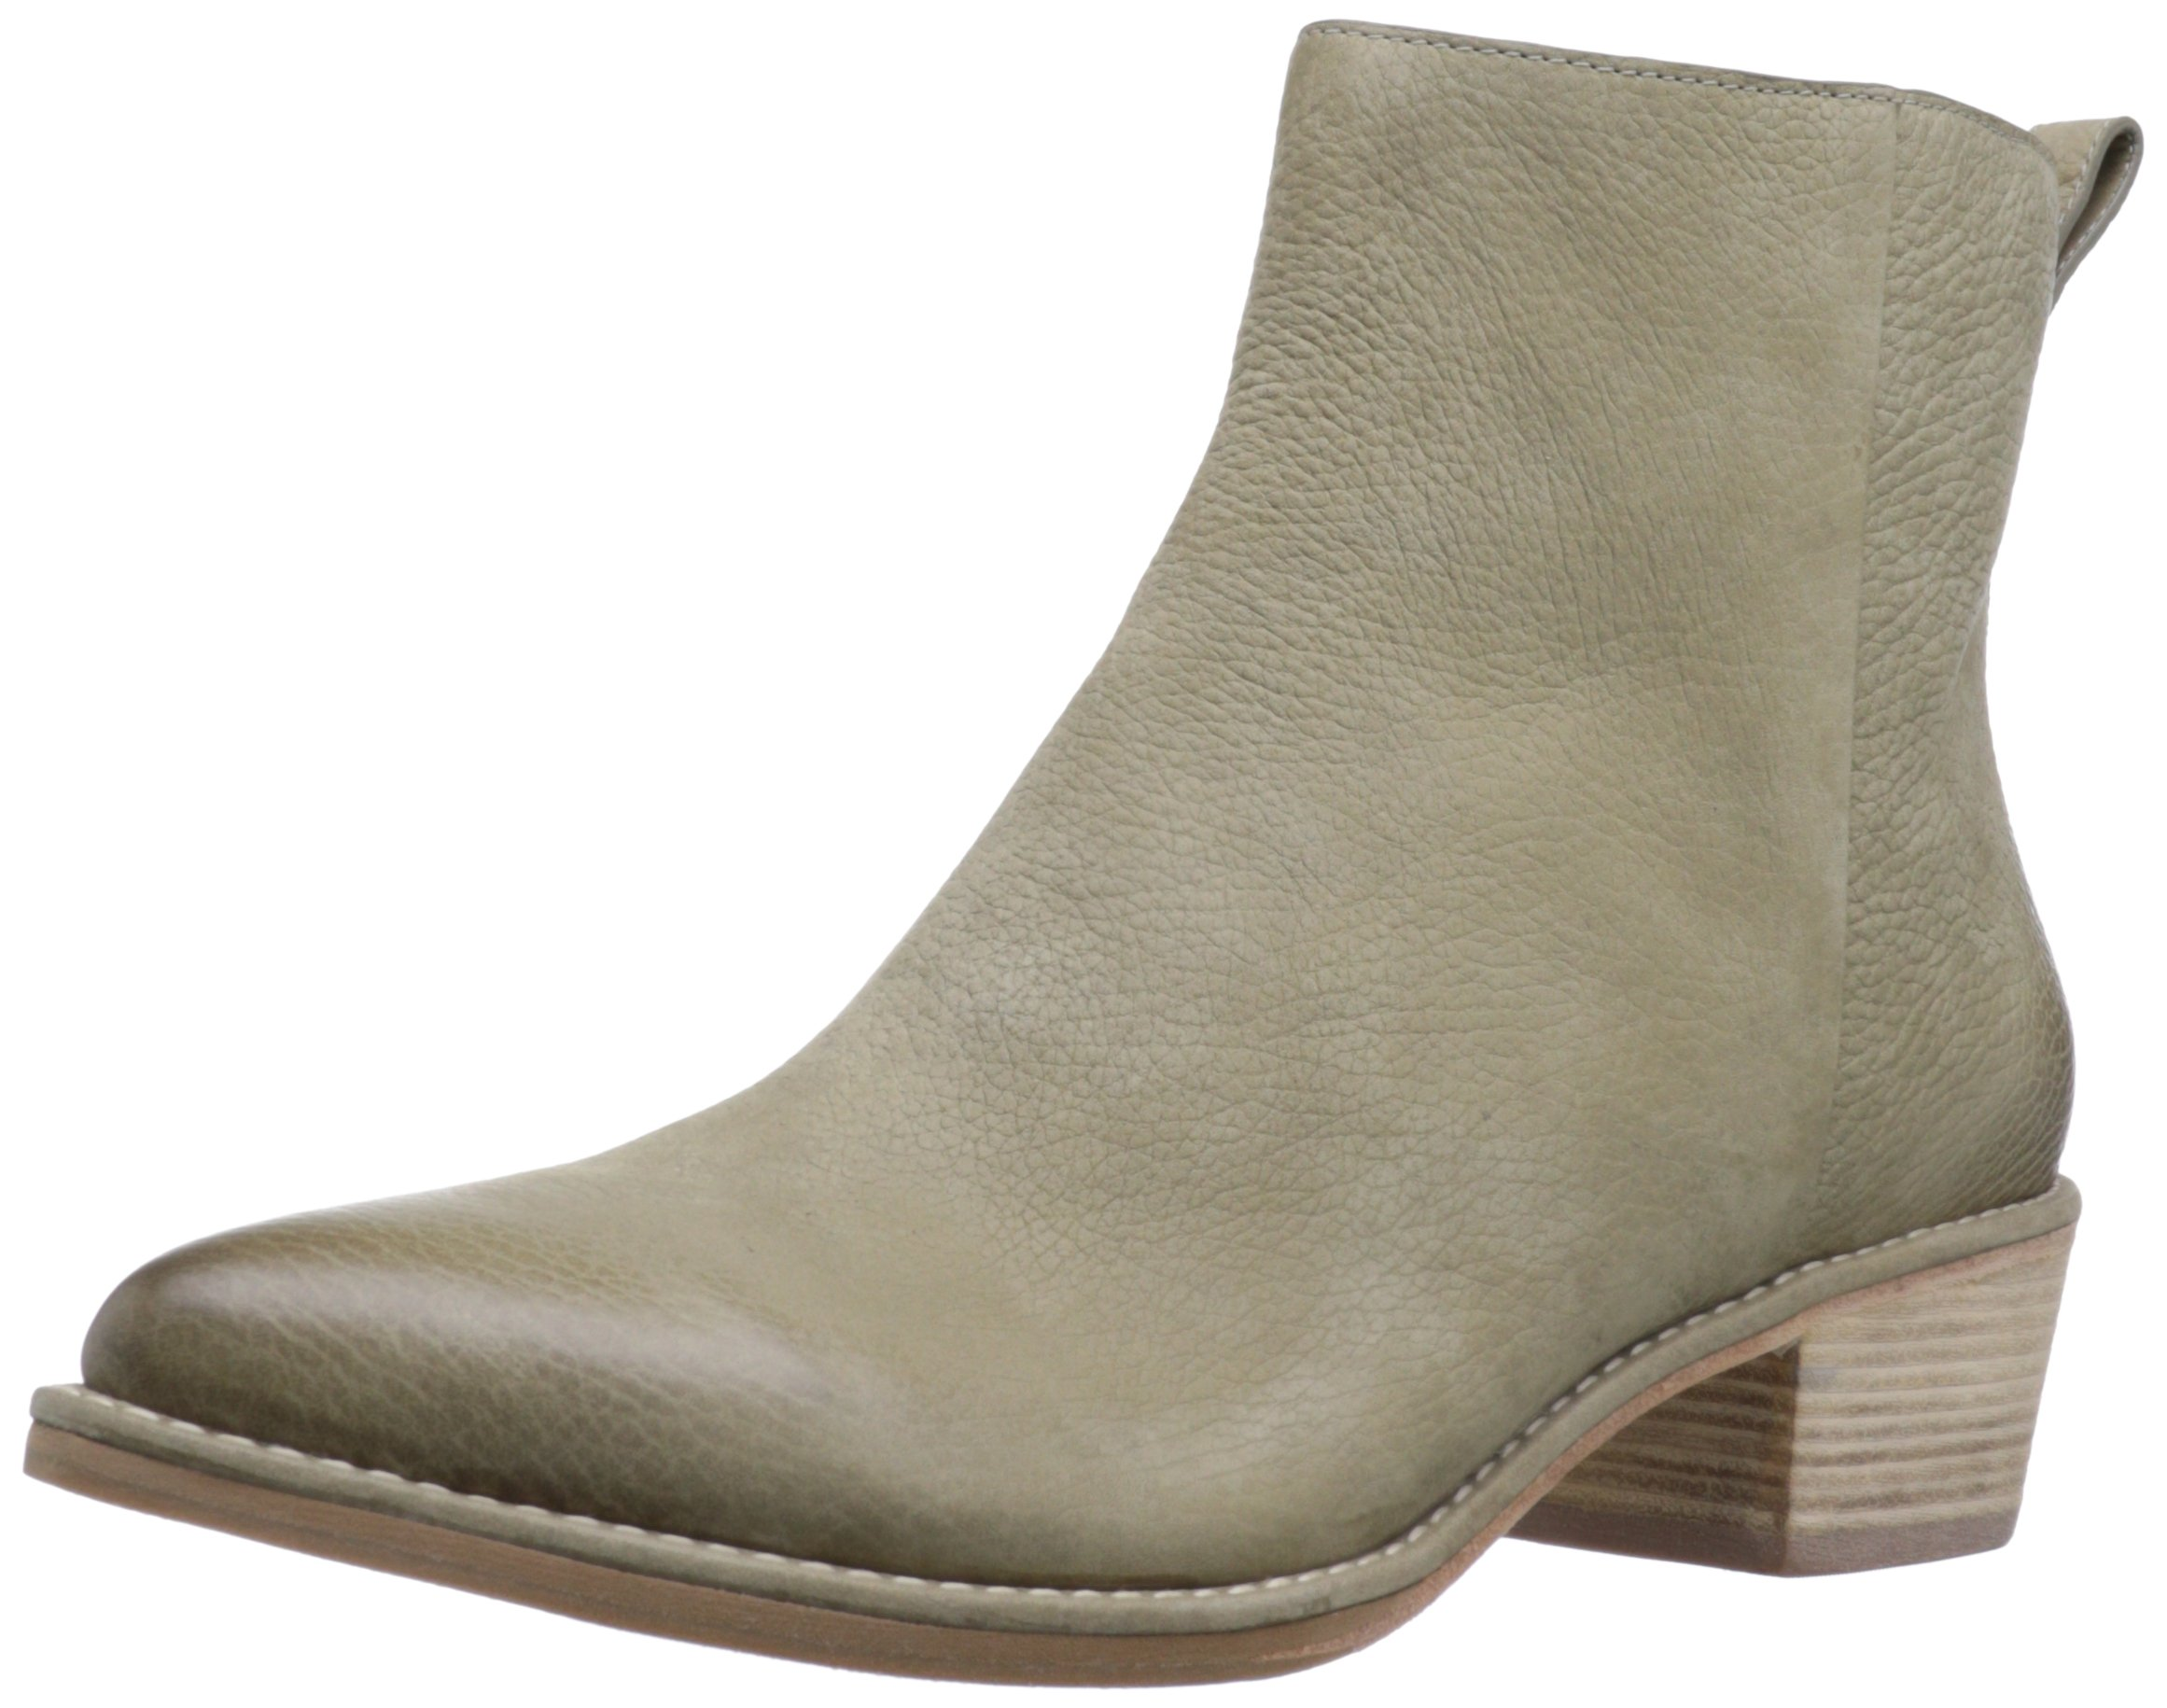 Cole Haan Women's Reilly Short Ankle Boot,Summer Khaki Nubuck,7.5 B US